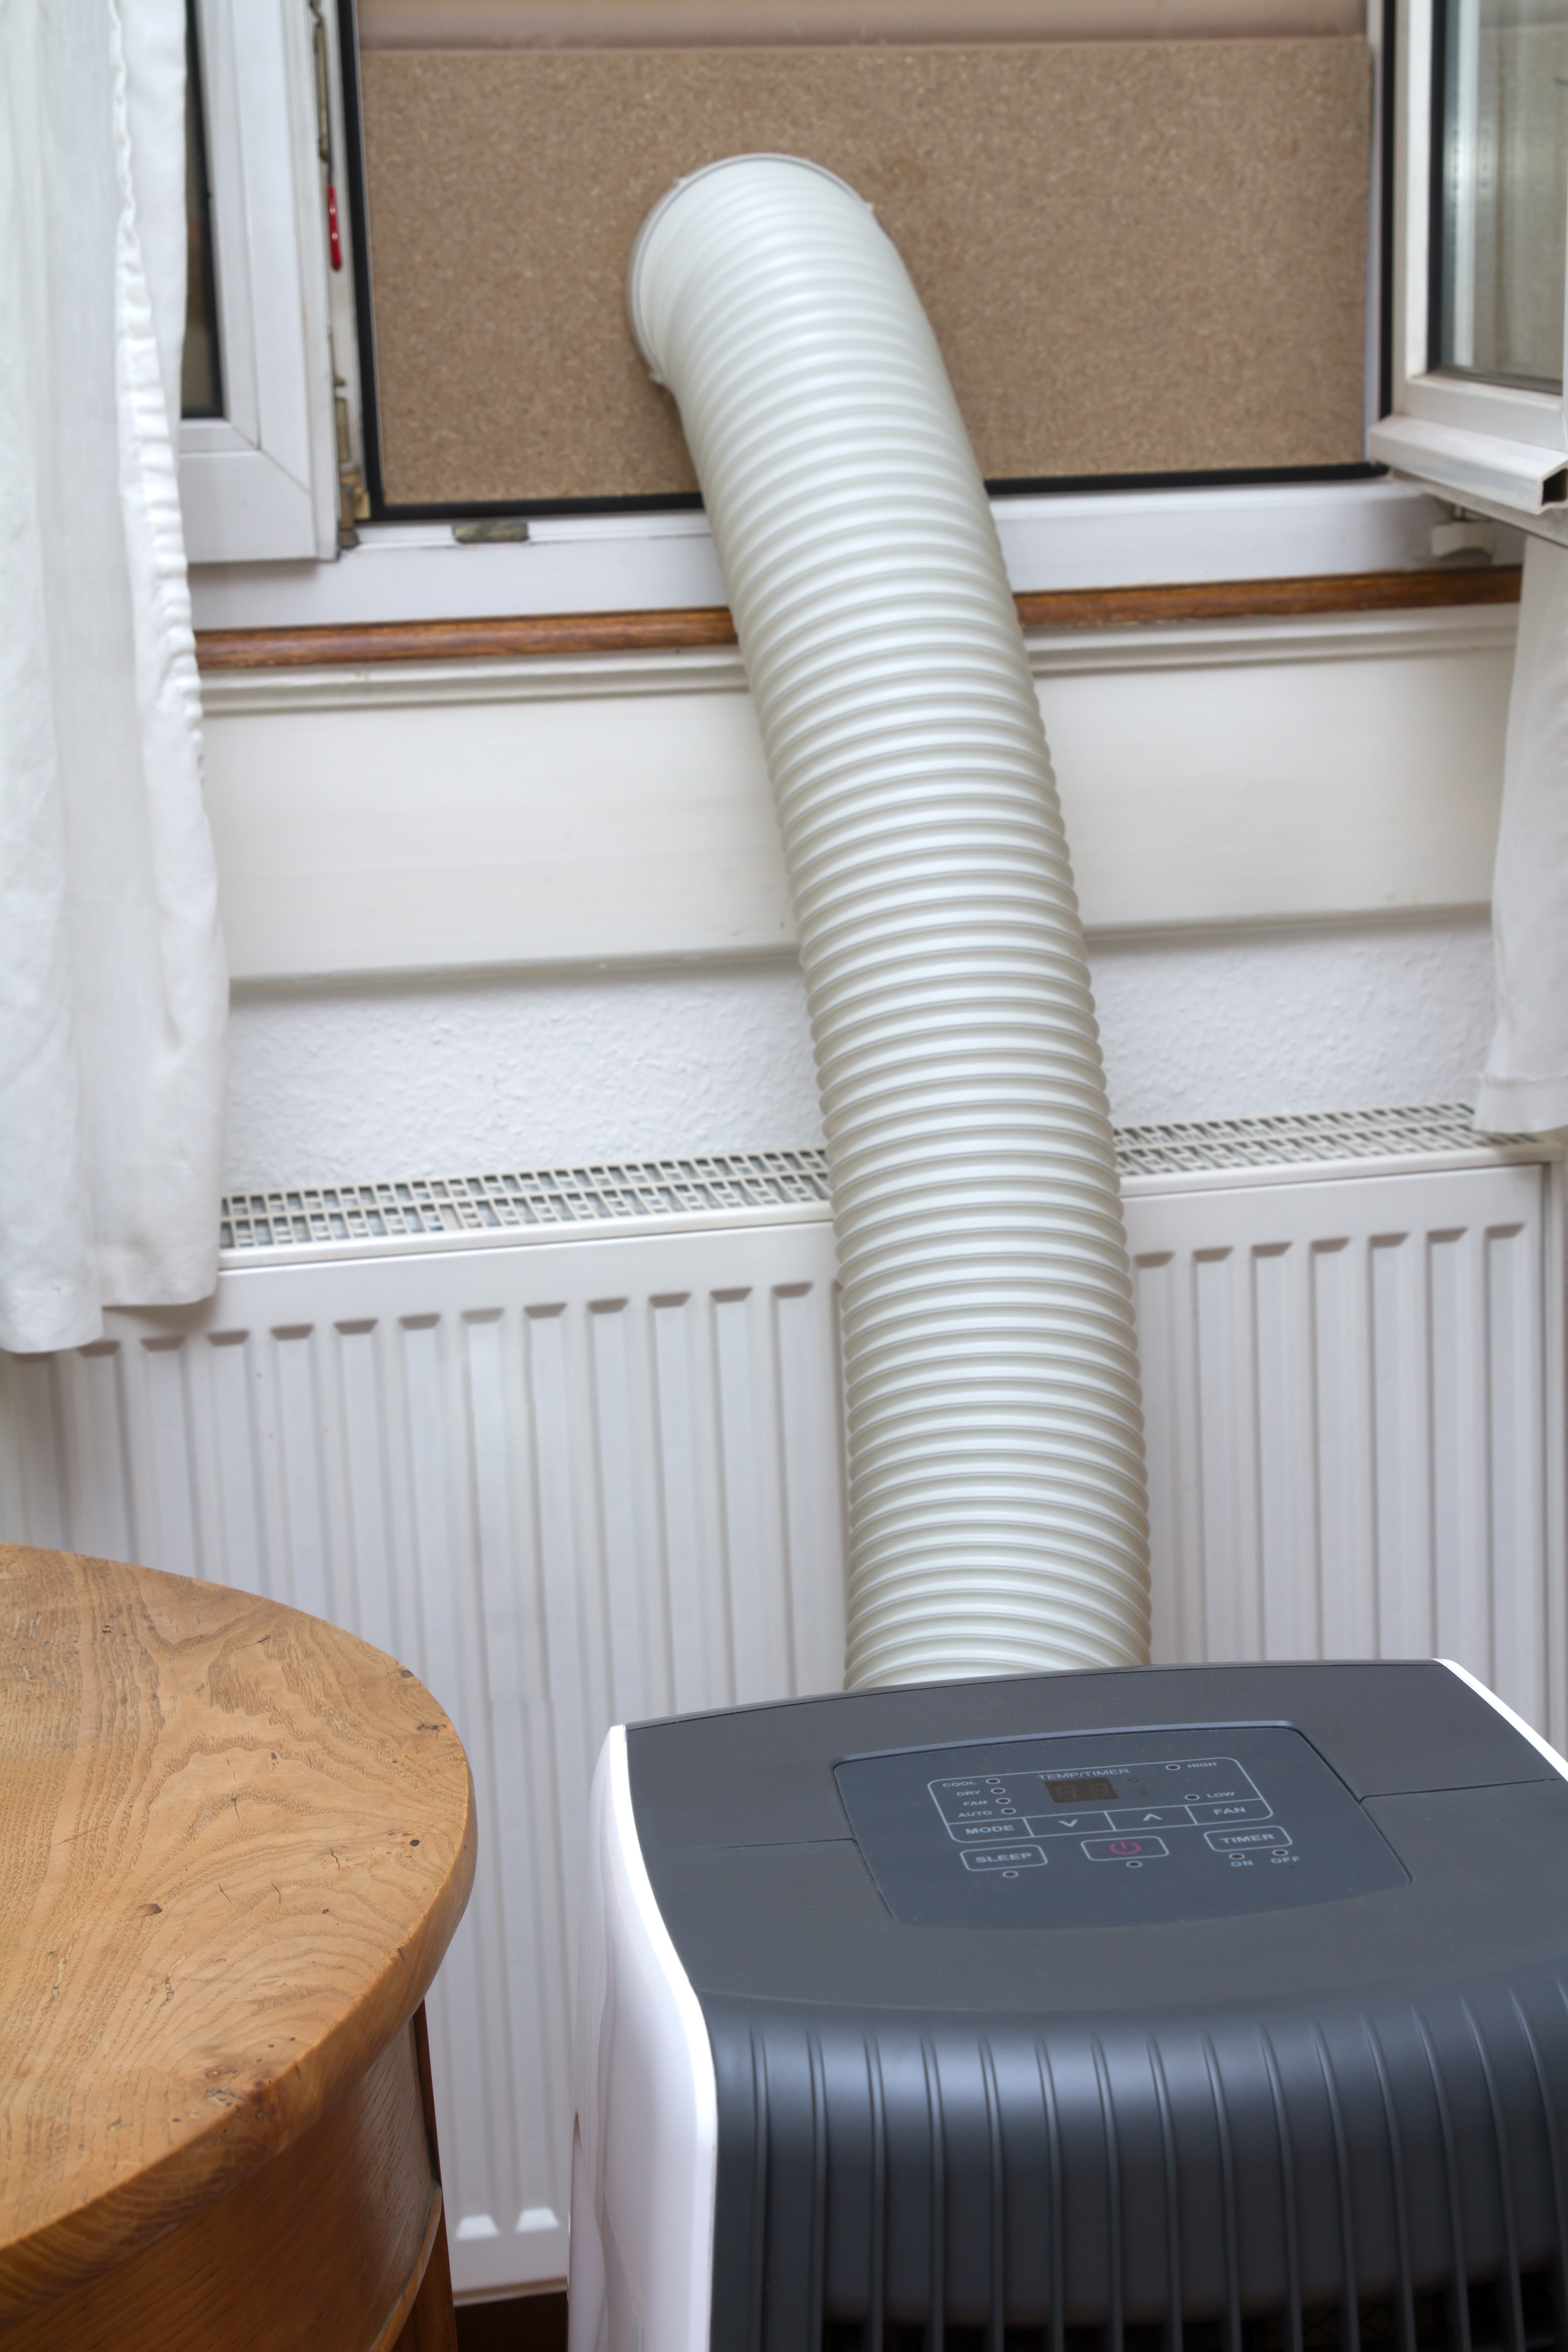 How to Use a Portable Air Conditioner Without Hoses | Hunker